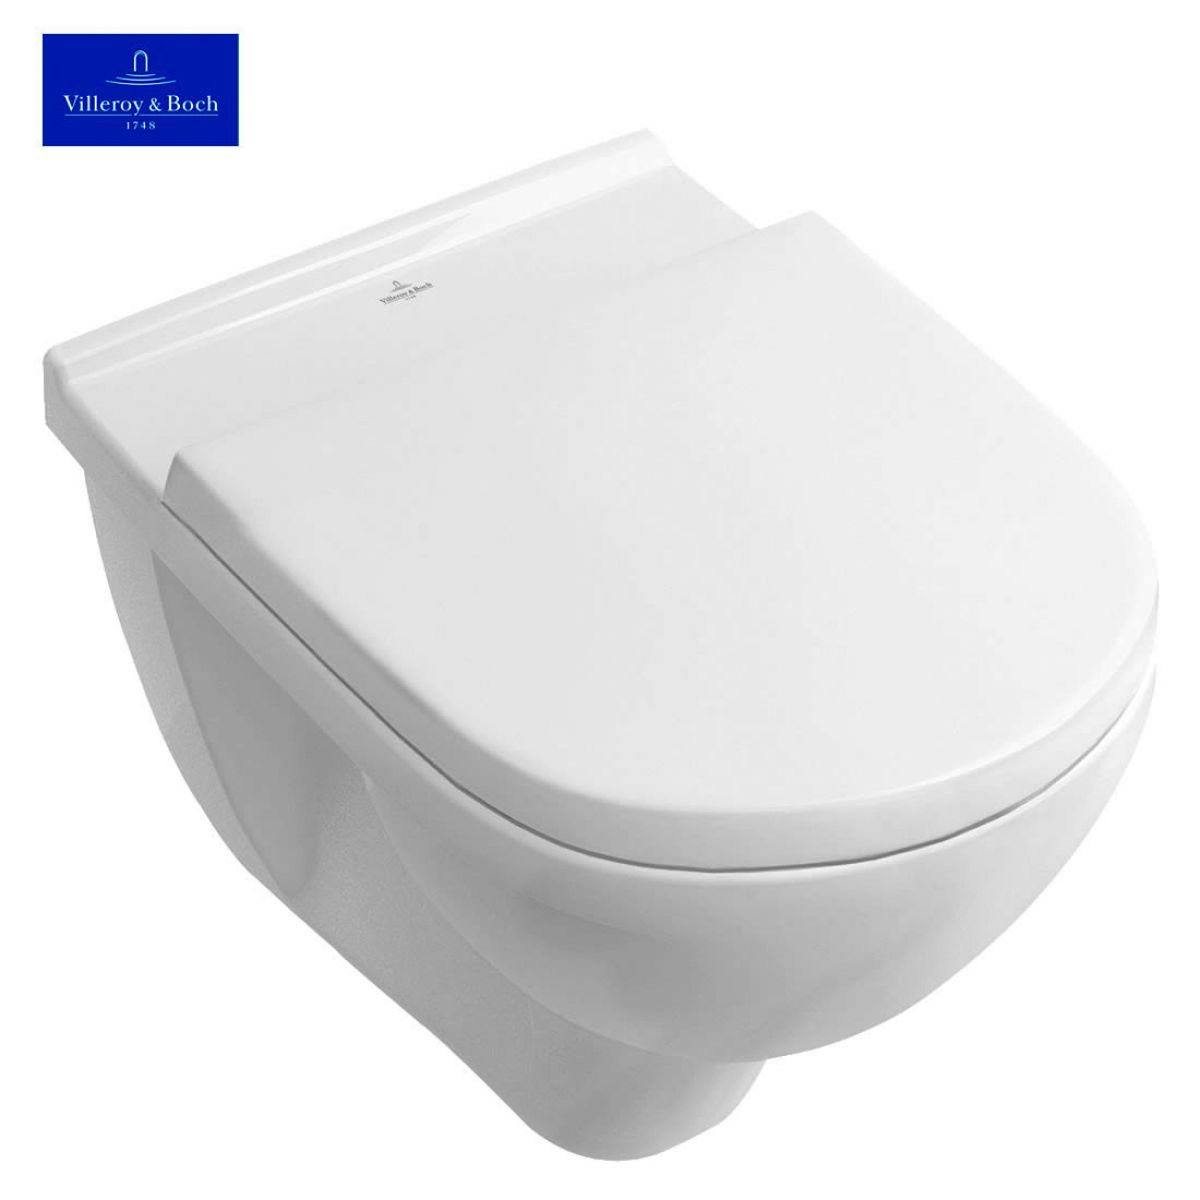 Villeroy boch o novo wall hung toilet uk bathrooms - Villeroy y bosch ...